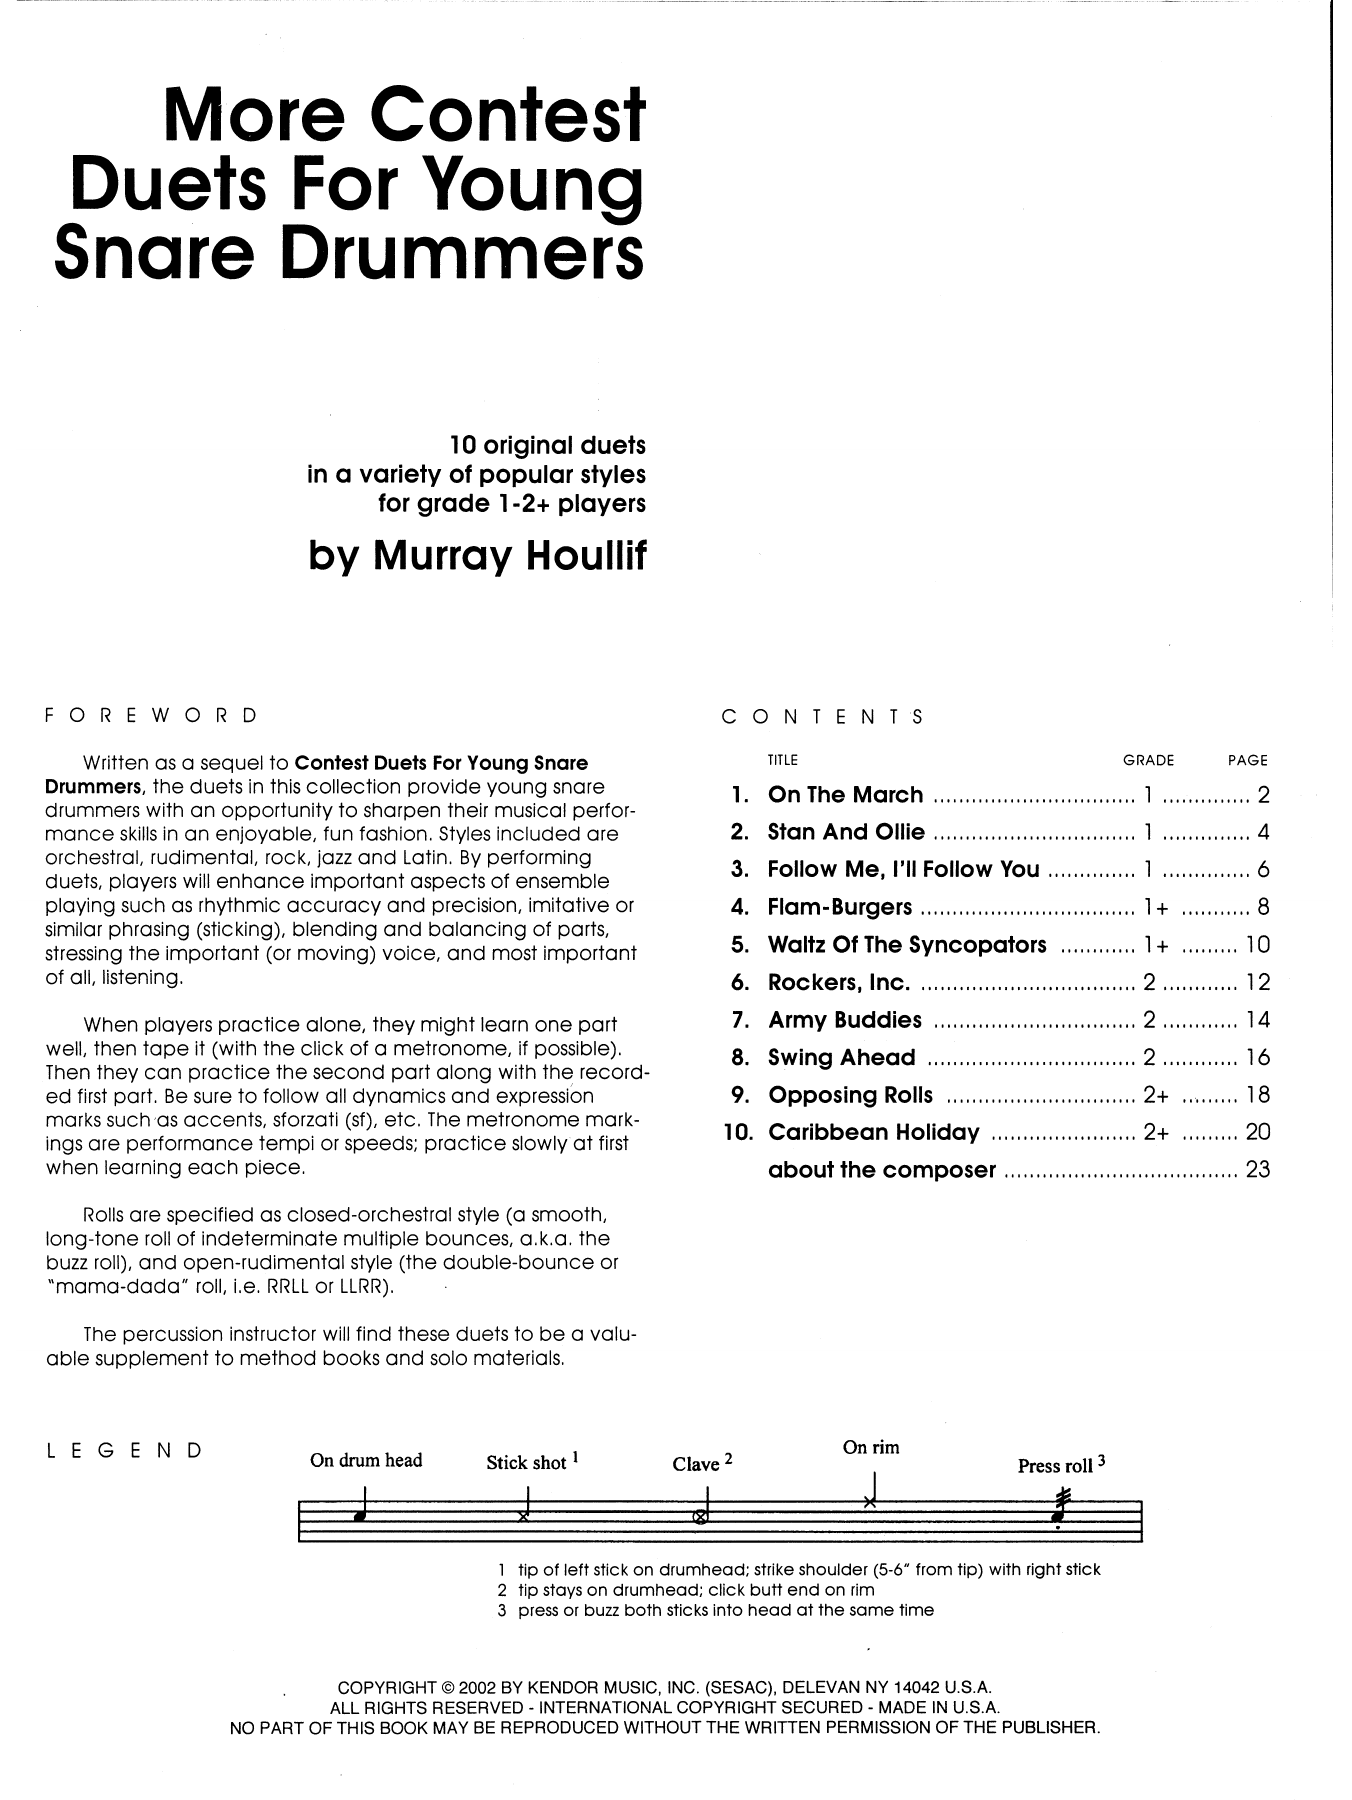 More Contest Duets For Young Snare Drummers Sheet Music